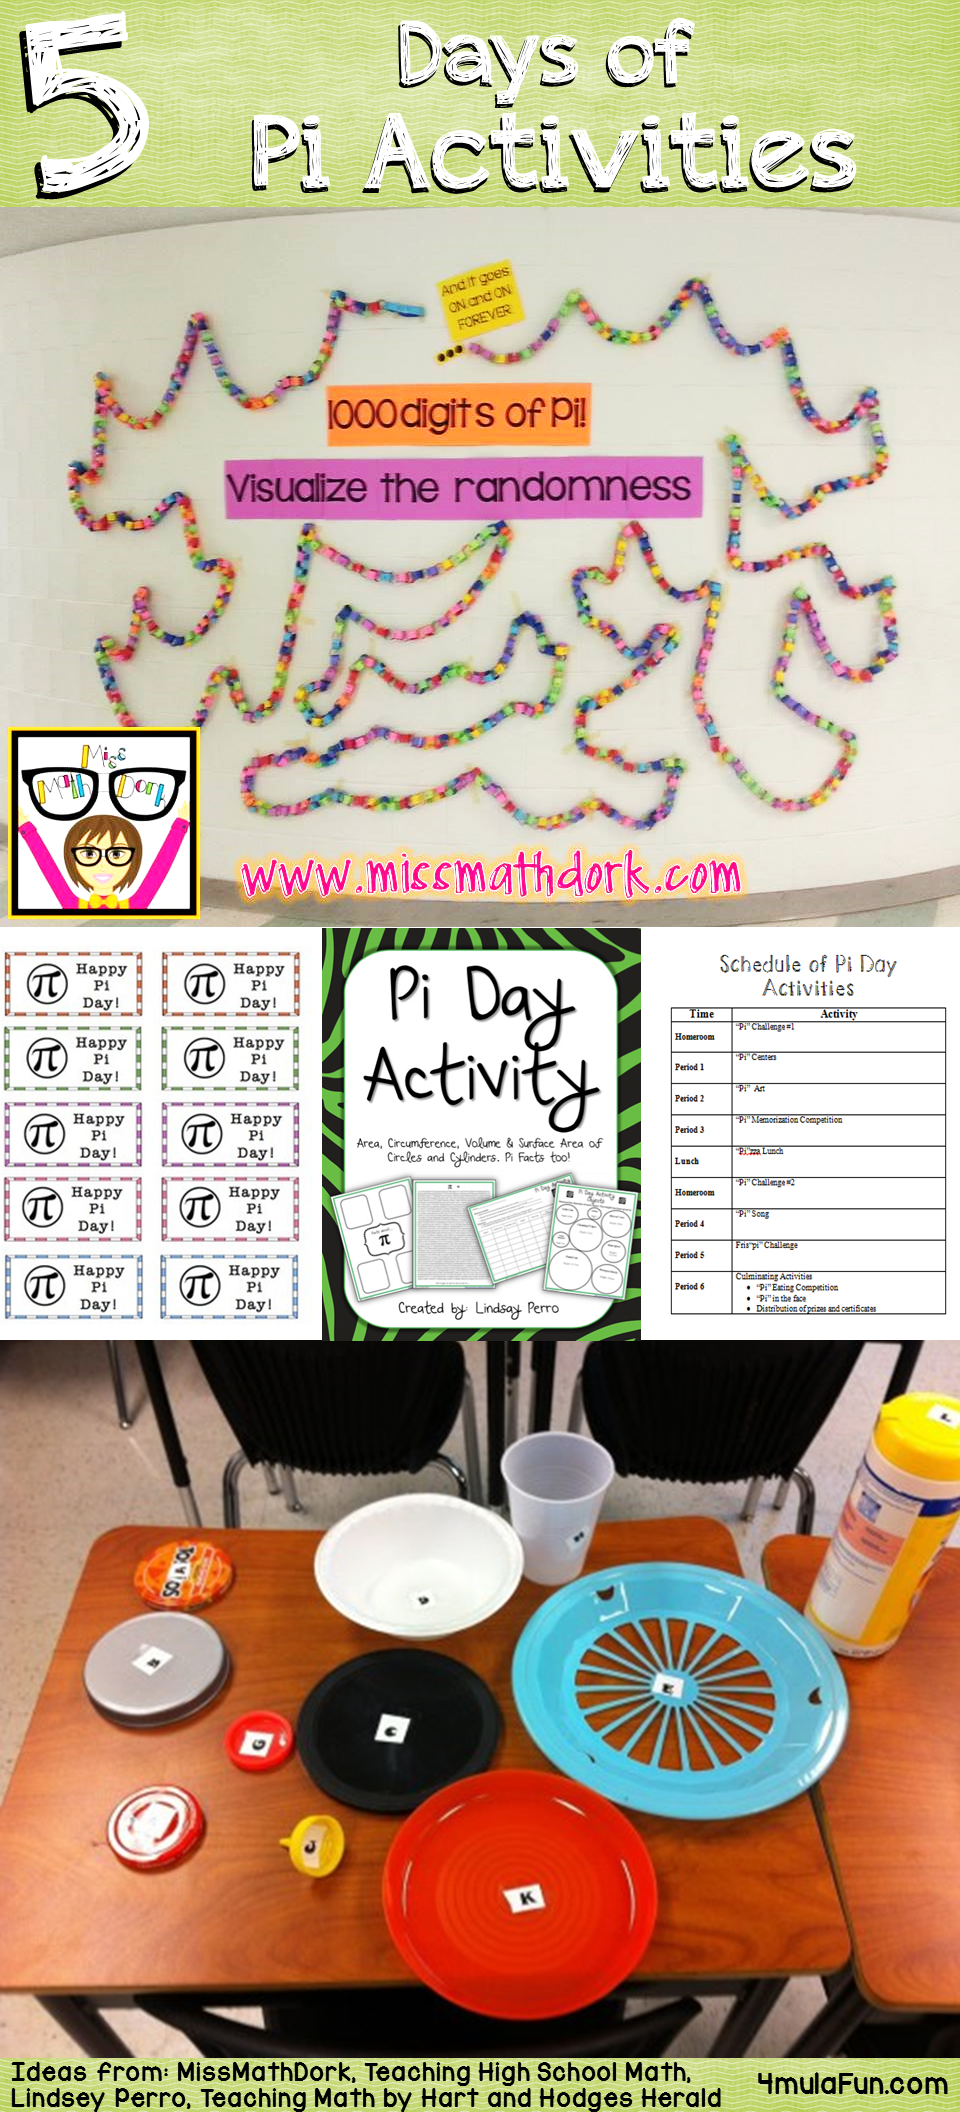 Looking for Pi Day Activitites? Check out the 5 Days of Activities from five different teachers!